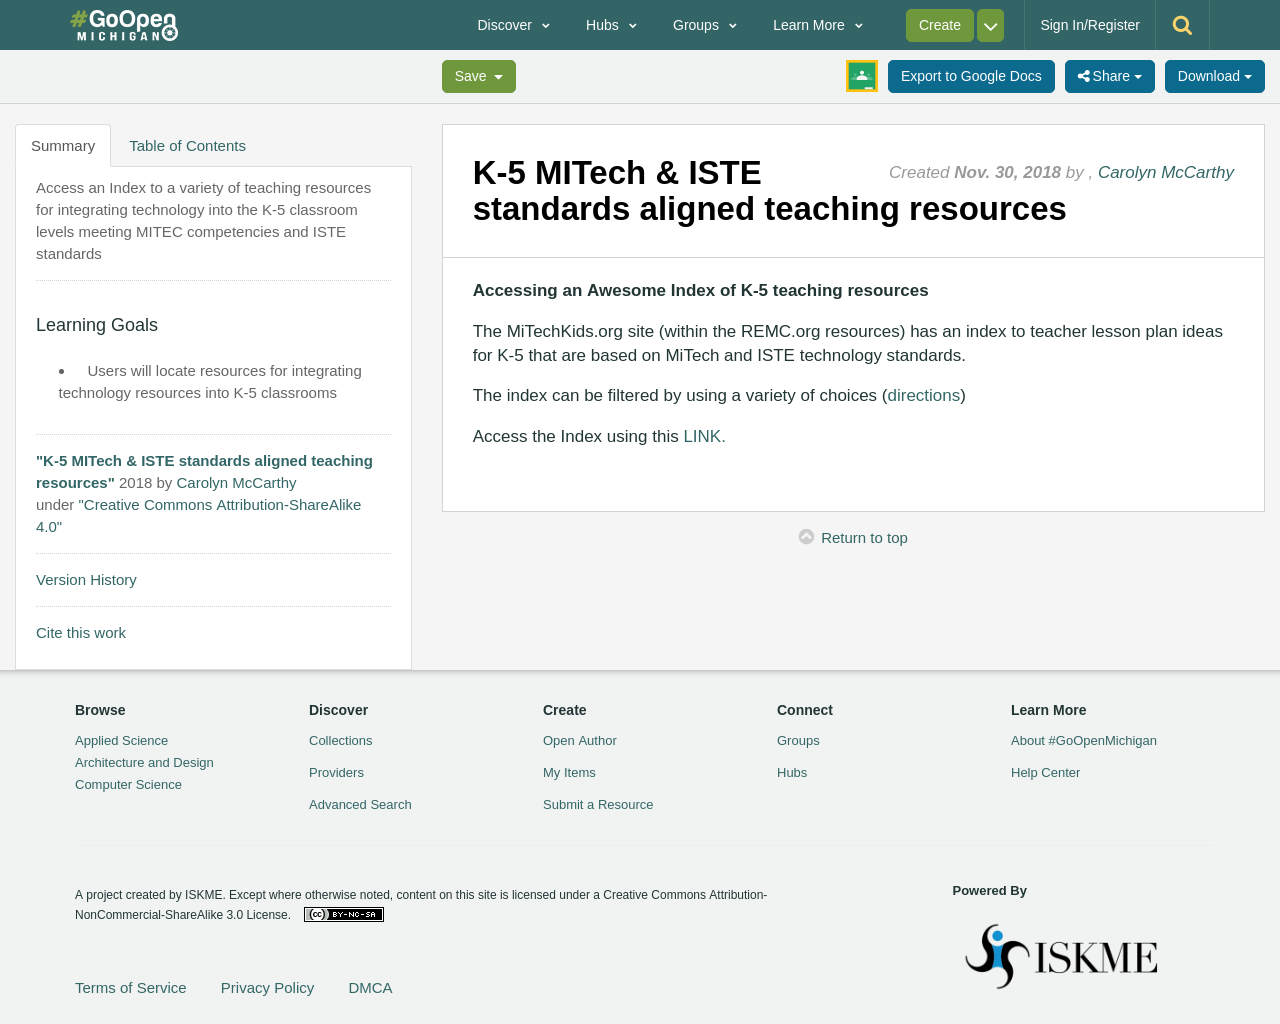 K-5 MITech & ISTE standards aligned teaching resources ...